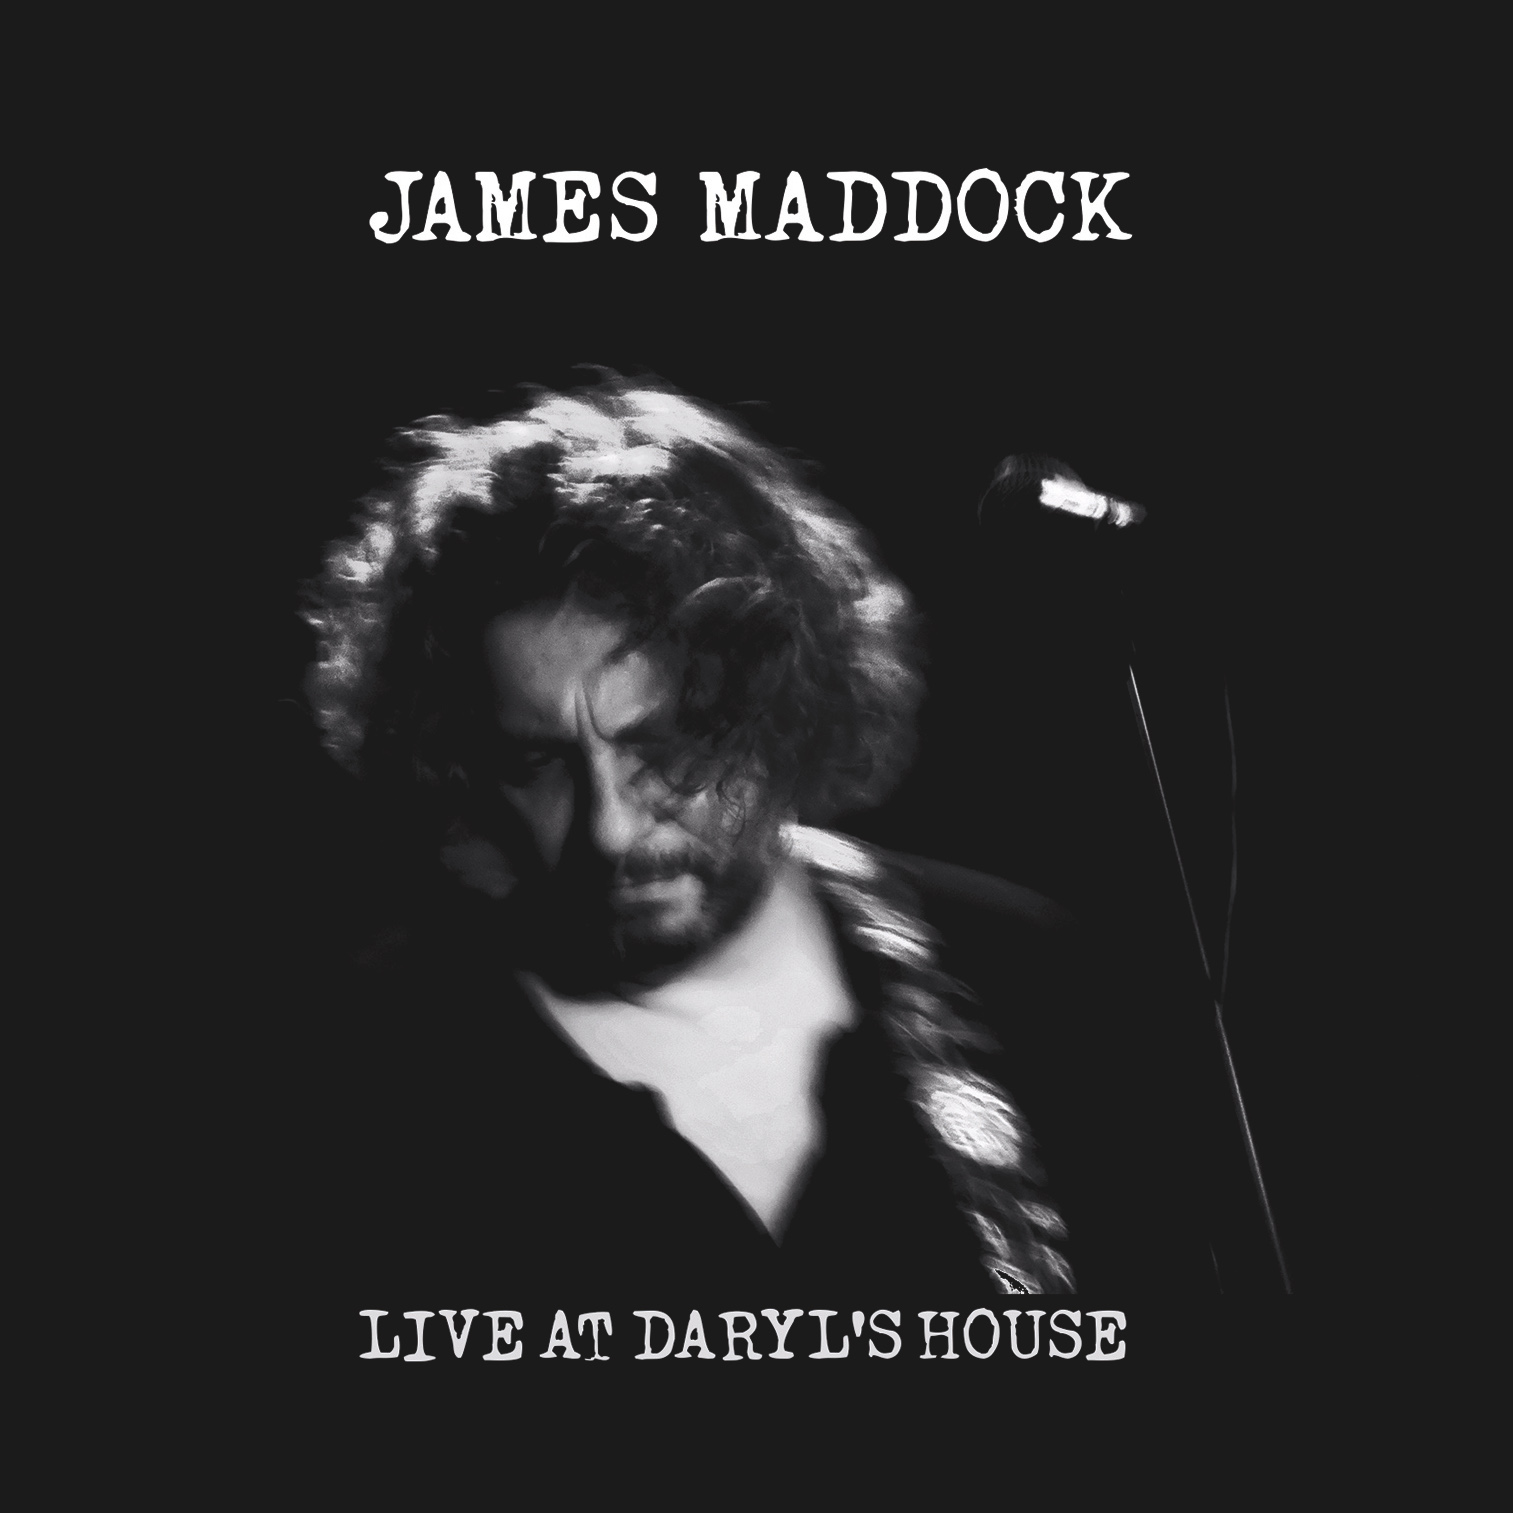 MADDOCK JAMES - LIVE AT DARYL'S HOUSE